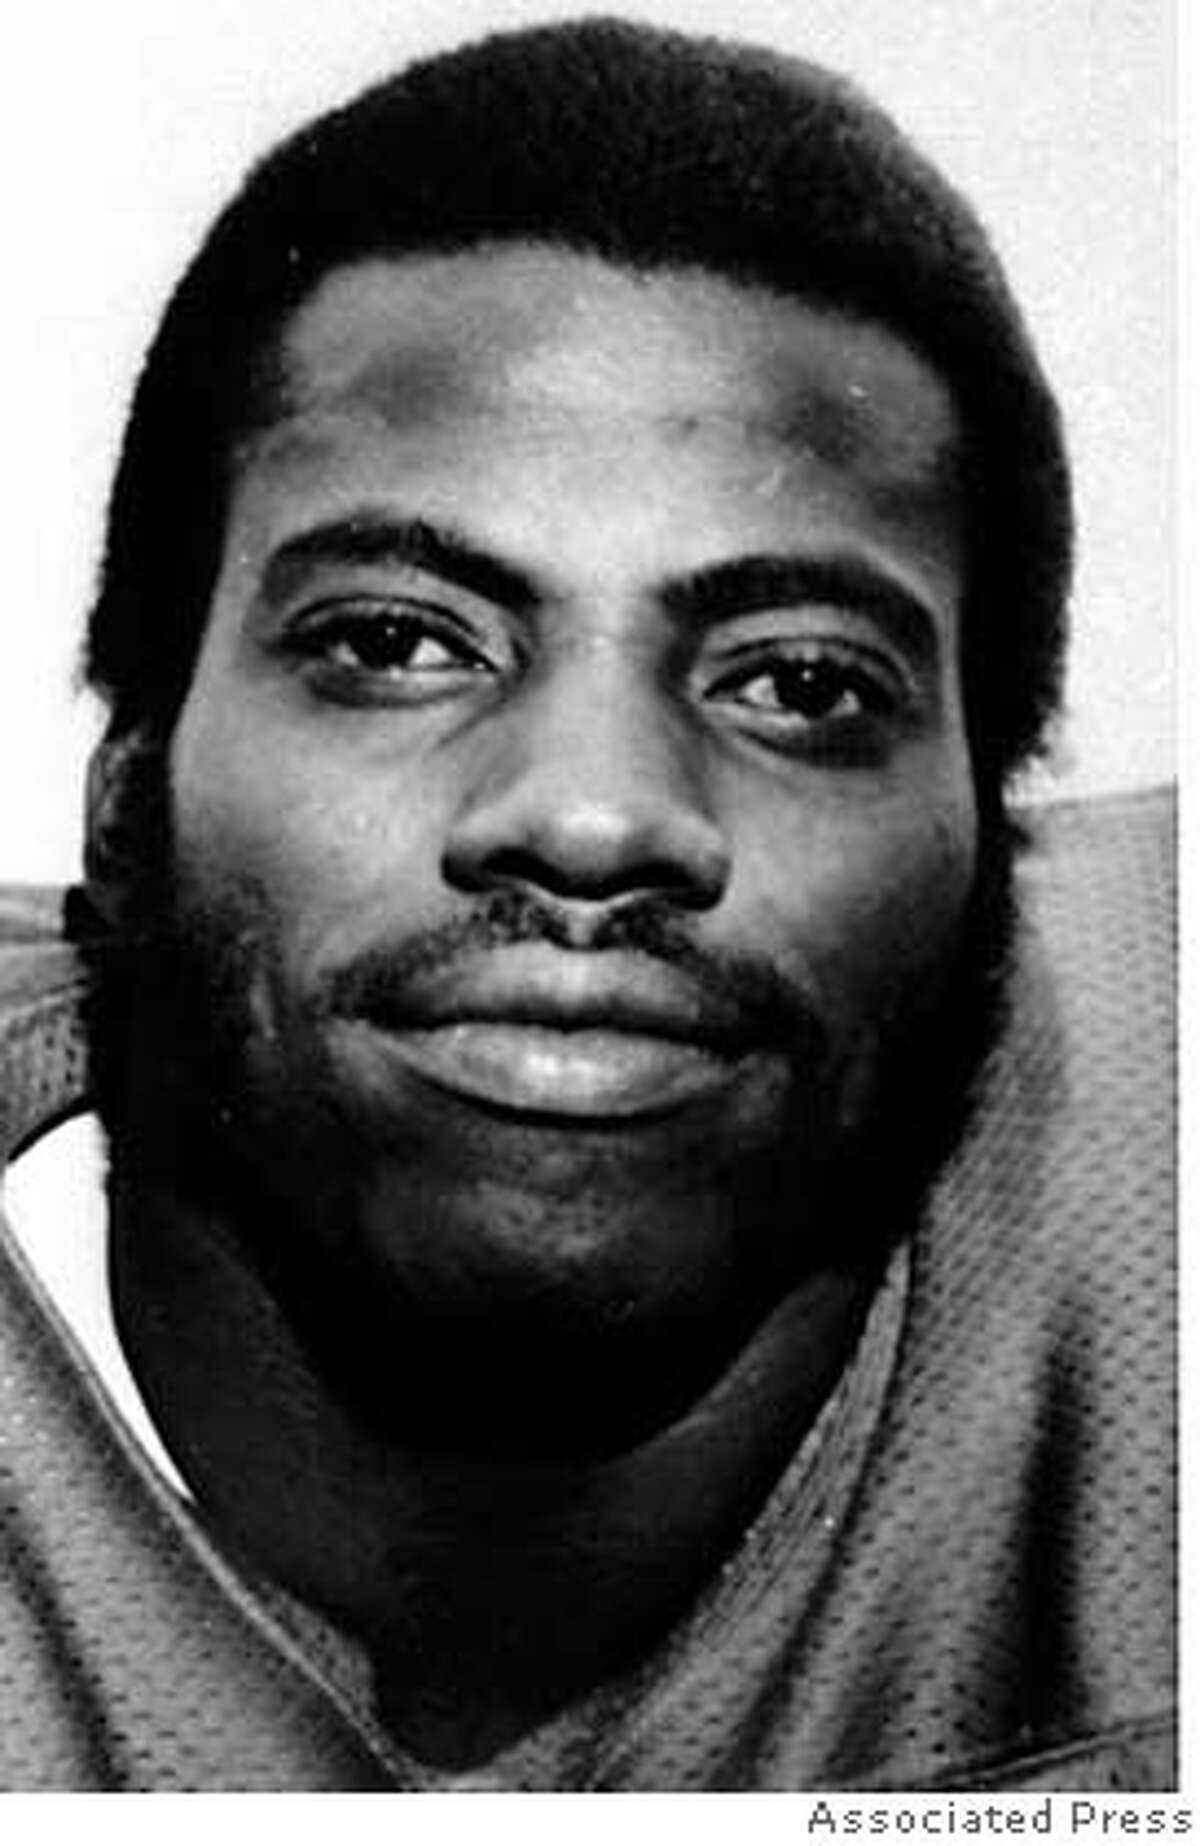 ** FILE ** Former San Diego/San Francisco defensive end Fred Dean, is shown in this undated file photo. Dean was elected to the Pro Football Hall of Fame, Saturday Feb. 2, 2008. (AP Photo,File) UNDATED FILE PHOTO - B/W ONLY EFE OUT